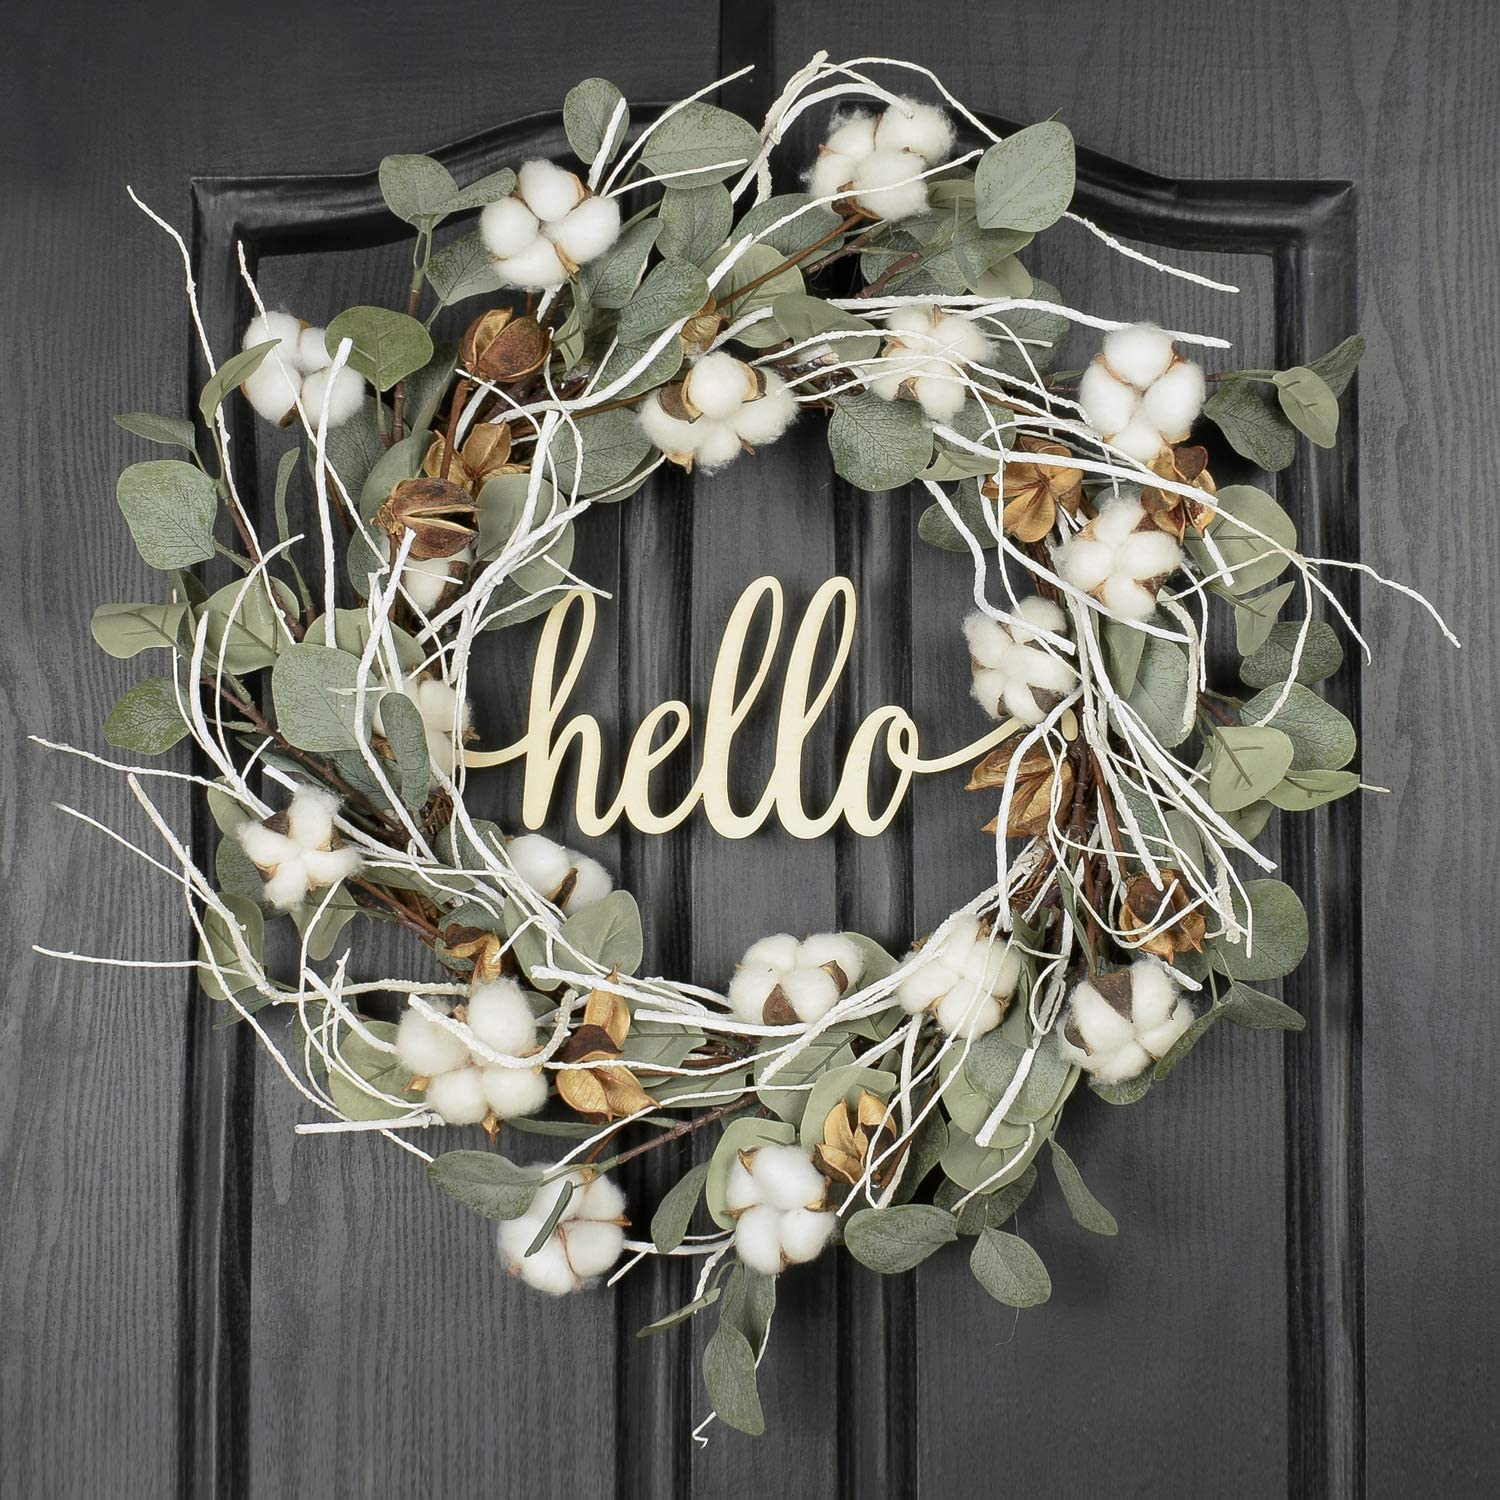 QUNWREATH 22 Inch Cotton Wreath,Wreath Front Door,Eucalyptus Wreath,Hello Wreath,Farmhouse Wreath,Everyday Wreath